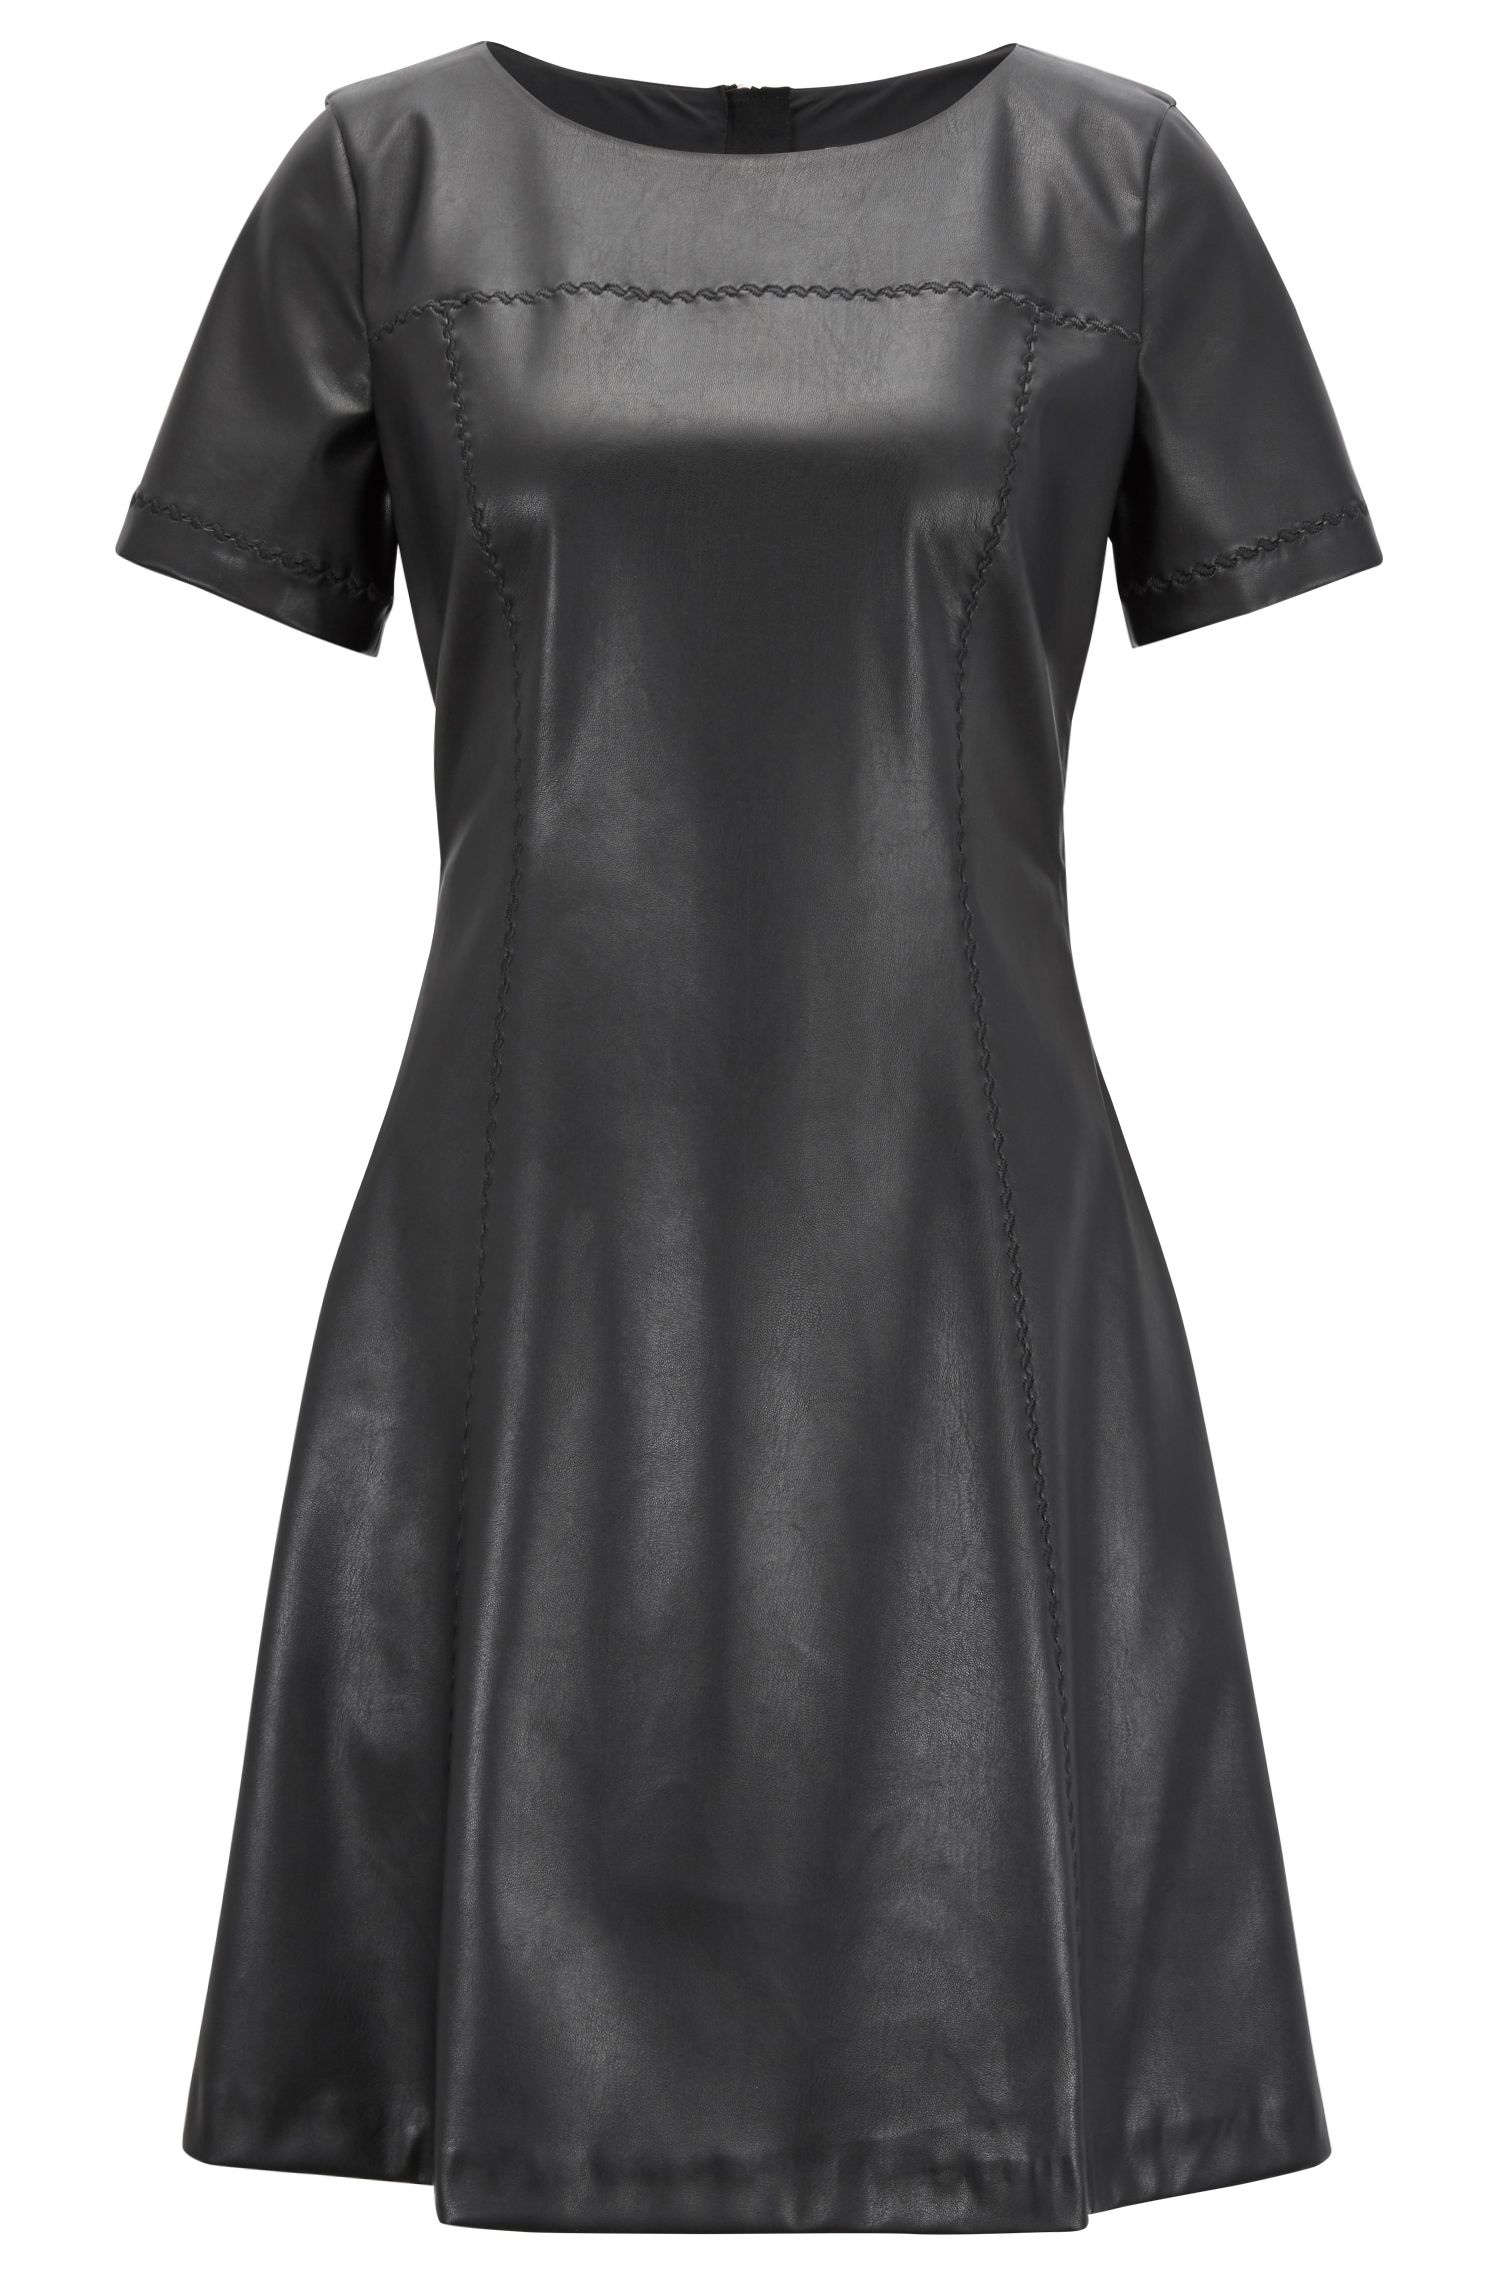 Faux-leather A-line dress with embroidery details